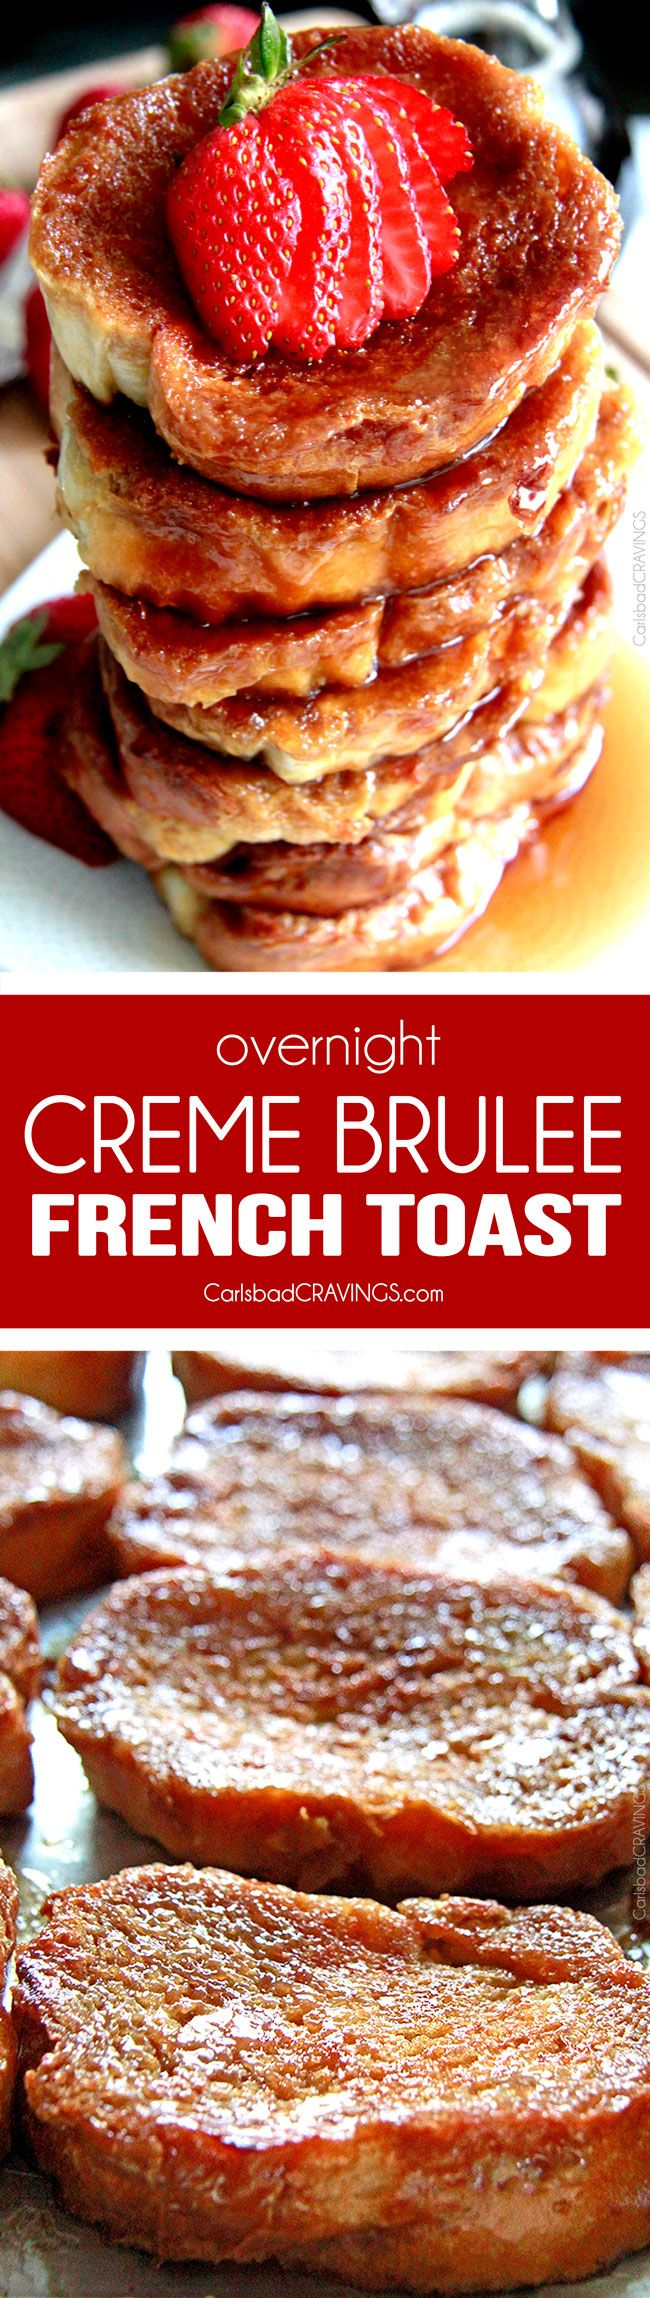 Creme Brulee French Toast tastes like glorious Creme Brulee and can be thrown together in 15 minutes and made the night before! Golden caramelized toasted outside, subtly creamy inside. Seriously melt in your mouth delicious - read the reviews! #Christmas